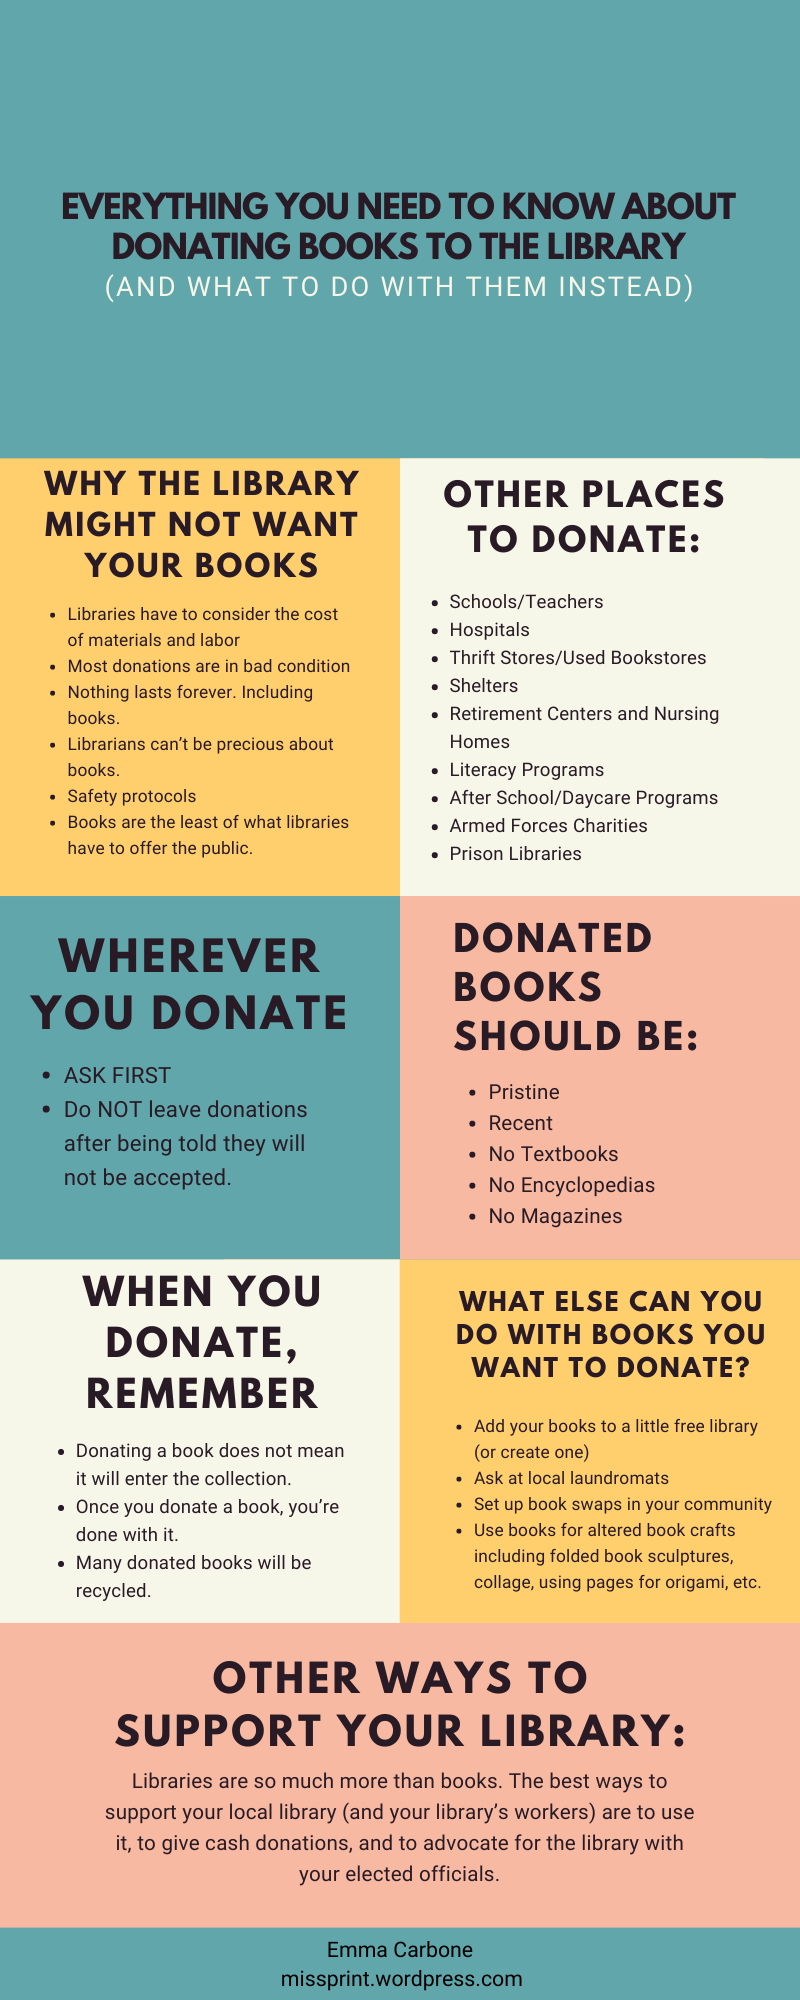 Book Donation Infographic made by Emma Carbone